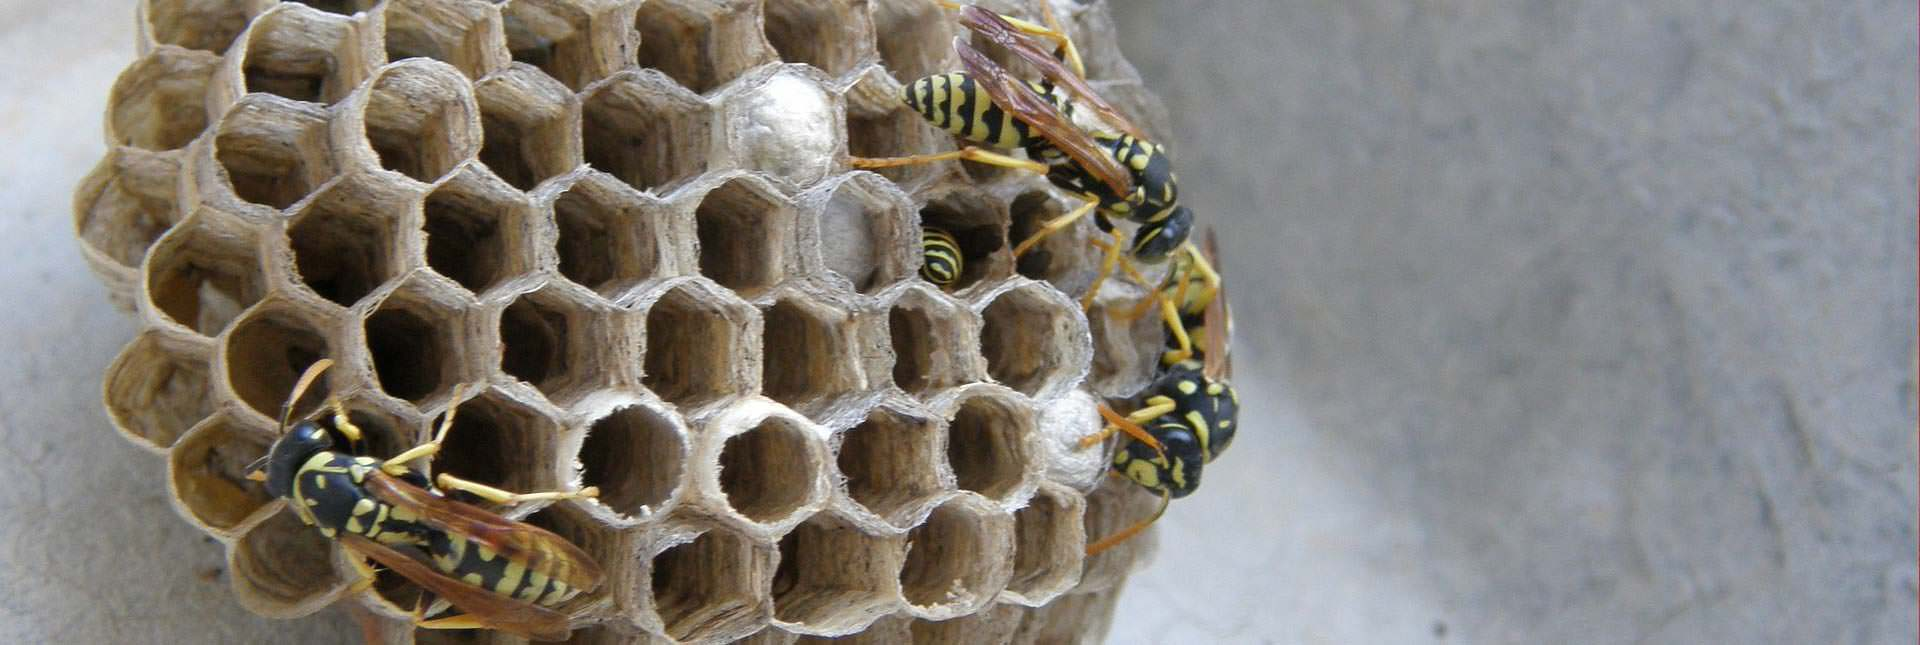 large-wasp-nest-2